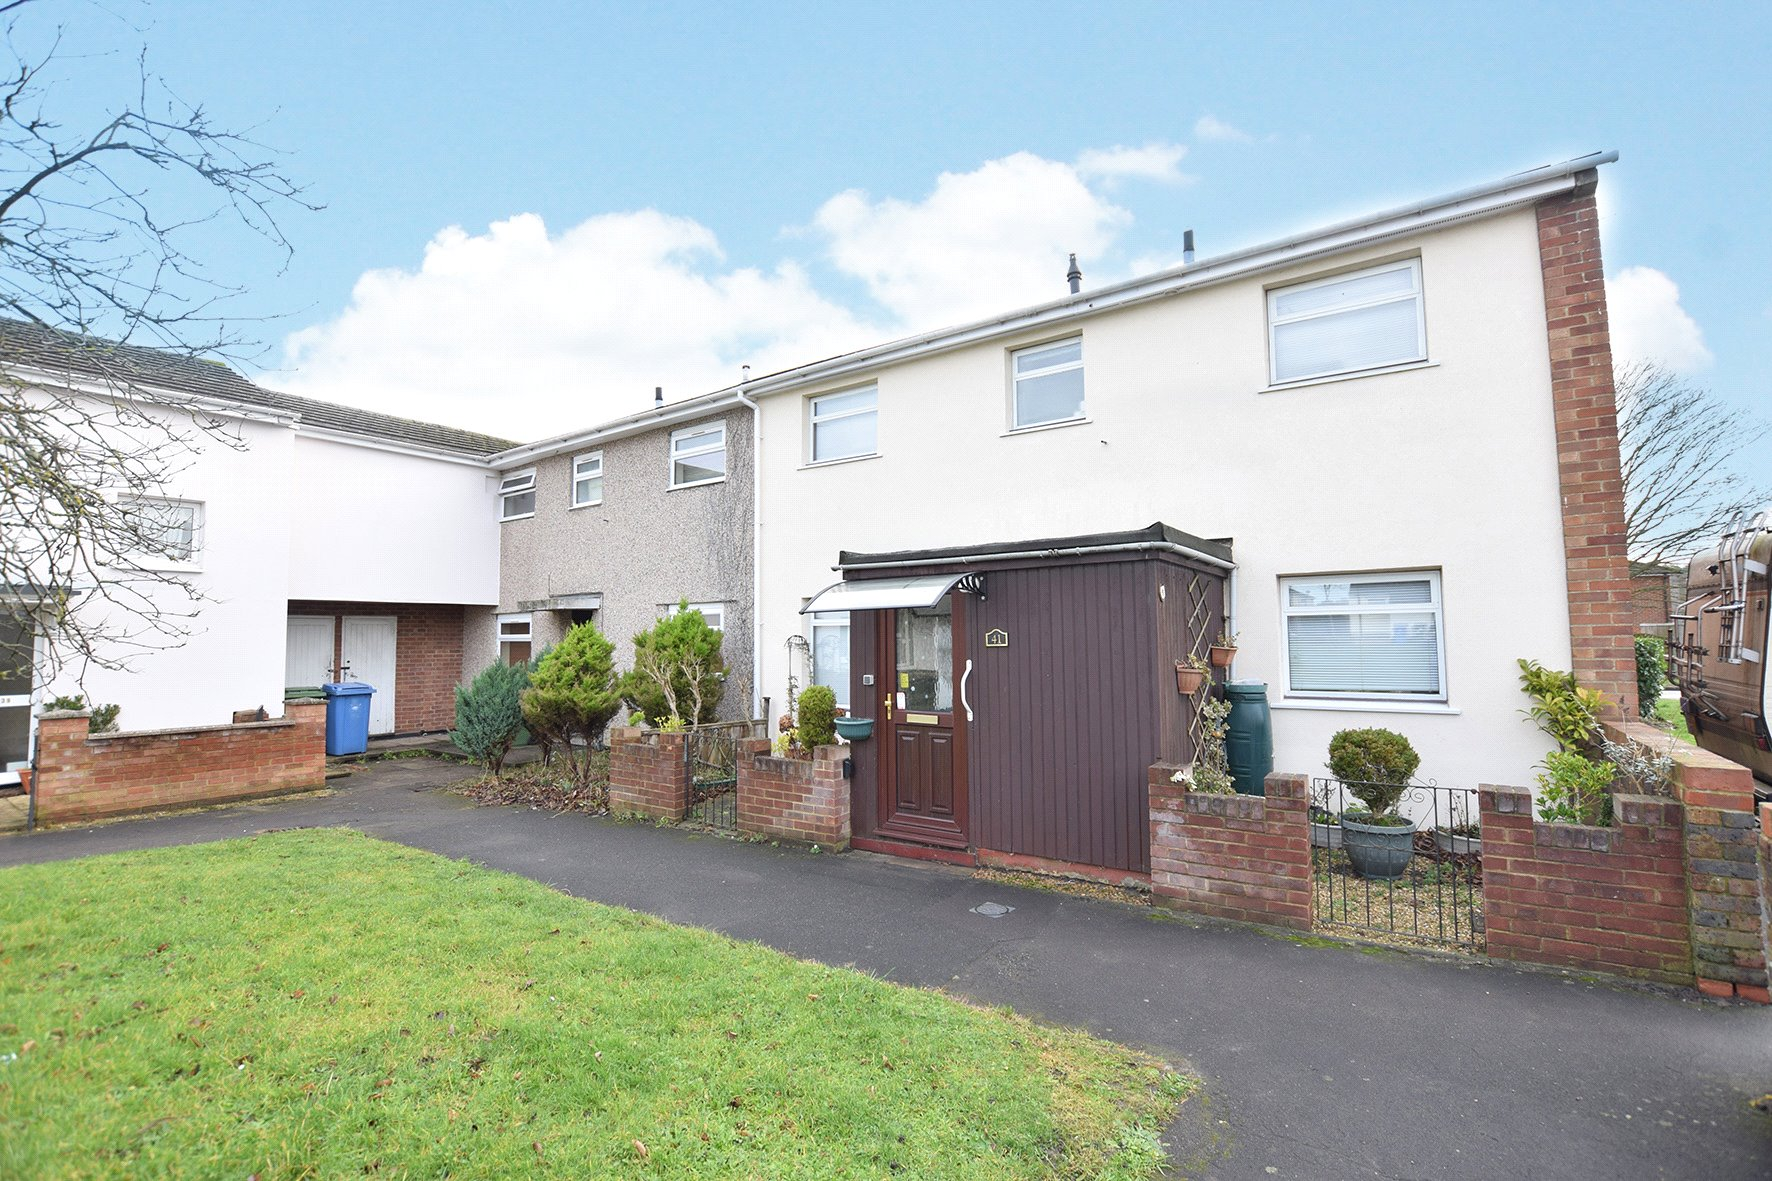 3 Bedrooms End Of Terrace House for sale in Ashbourne, Bracknell, Berkshire, RG12